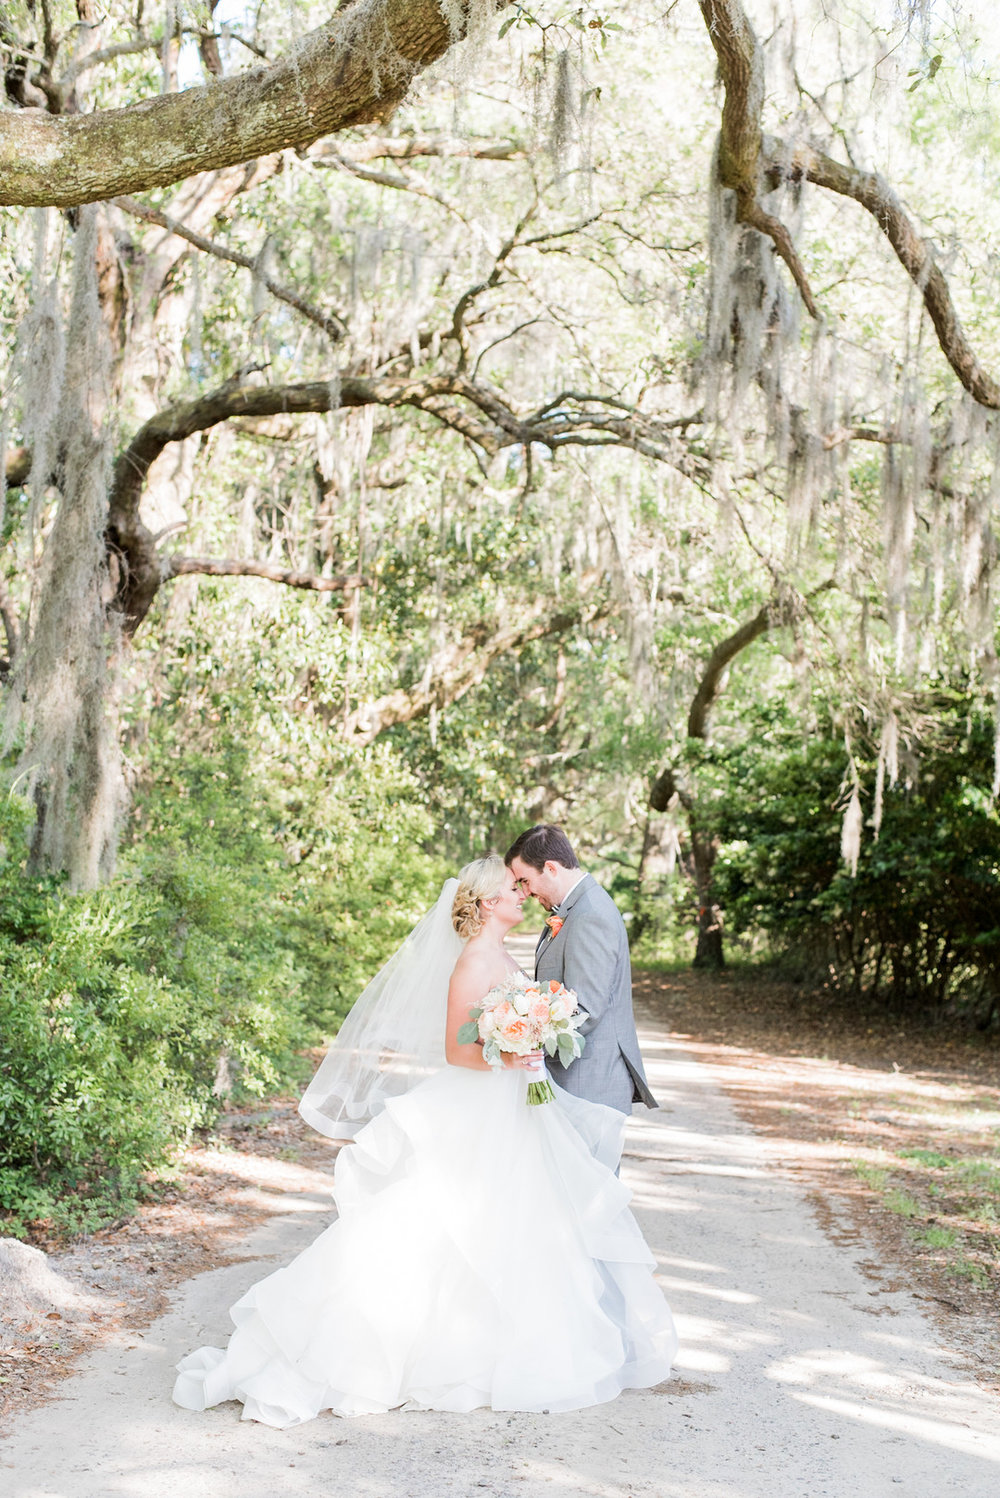 old-wide-awake-plantation-wedding-18.jpg